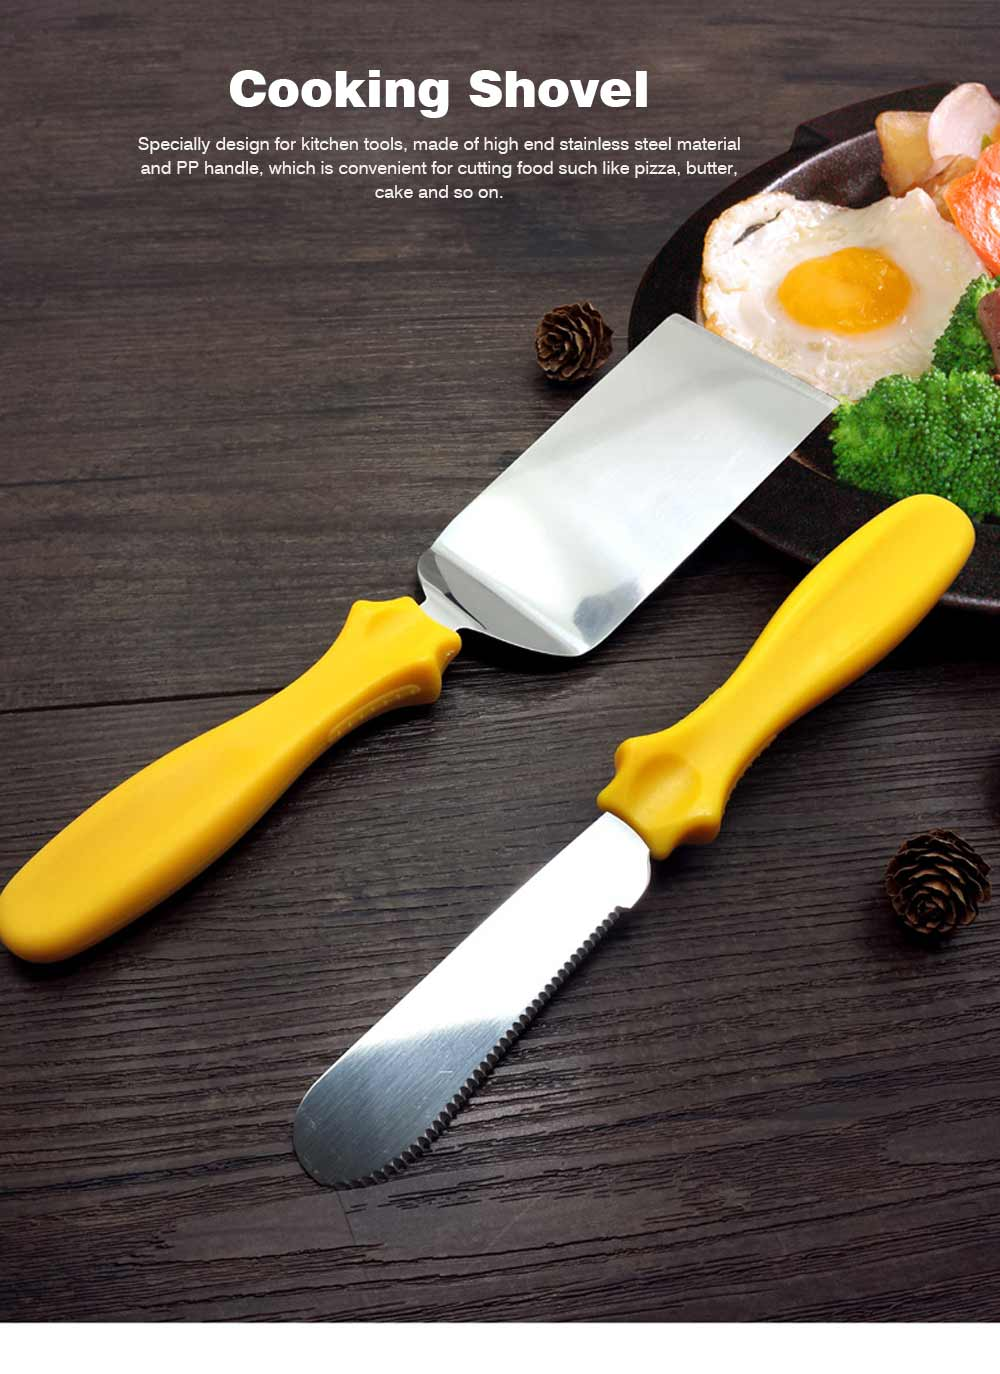 Stainless Steel Shovel Knife, Butter Cheese Cutter Knife, Cook Accessories Cooking Pizza Food Shovel, PP Handle, Set Of 3 0